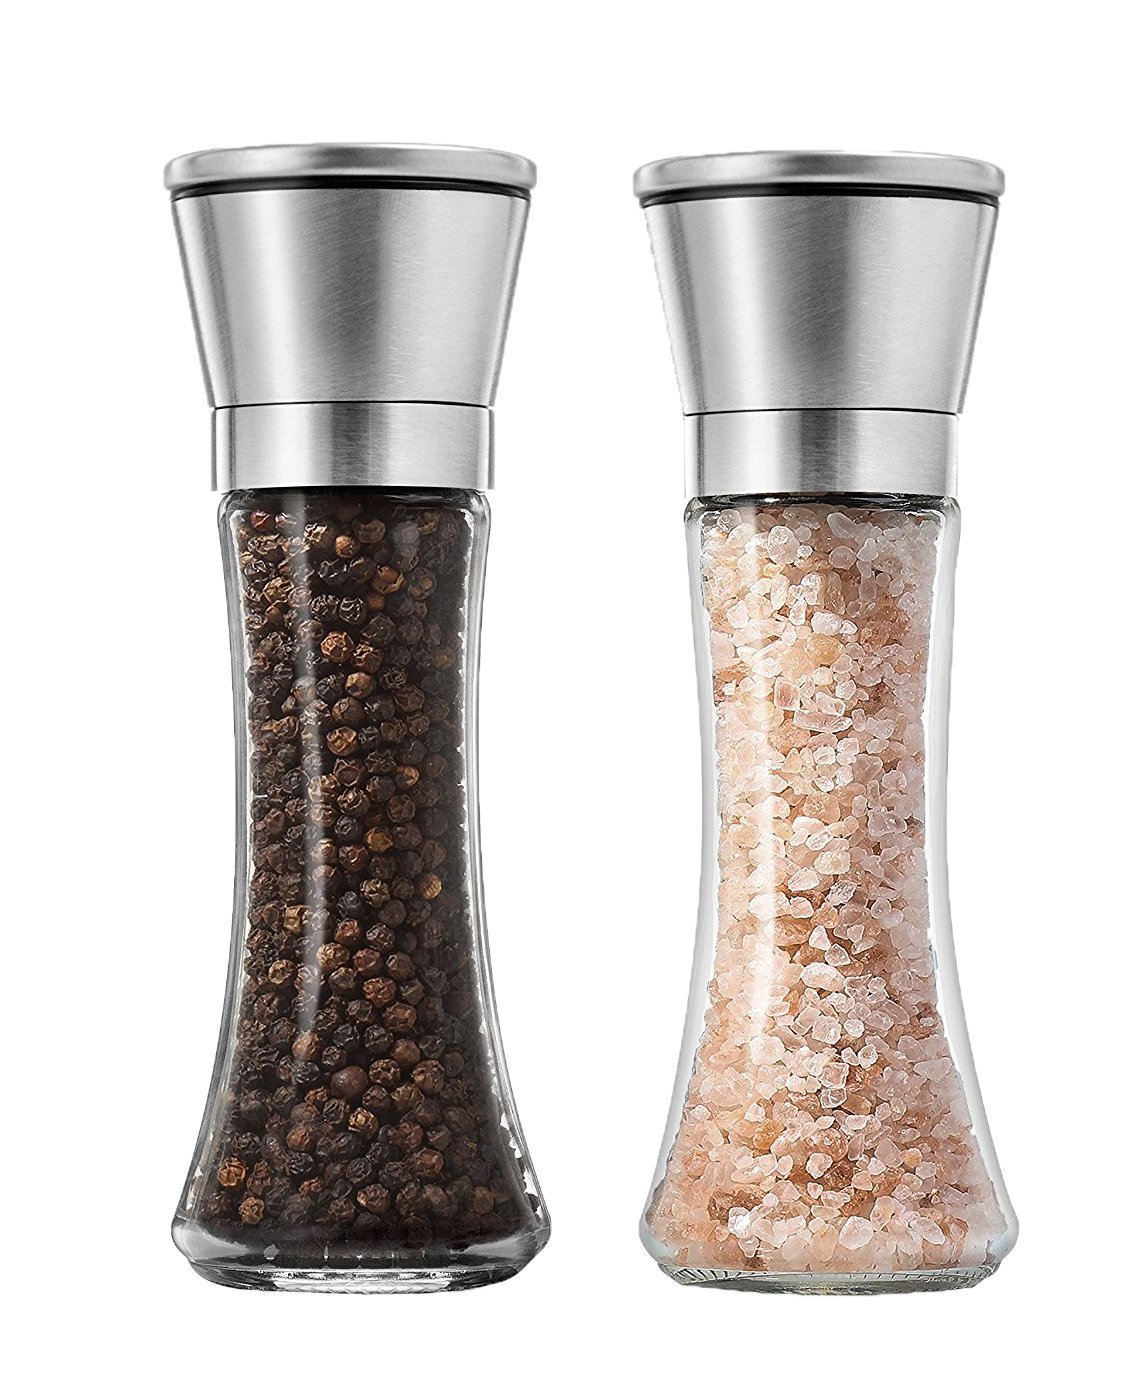 XIYIXIFI Premium Brushed Stainless Steel Salt and Pepper Grinders, Salt and Pepper Shakers, Salt Grinder with Adjustable Coarseness, Salt and Pepper Mills, 6.5 Oz Glass Tall Body, Set of 2